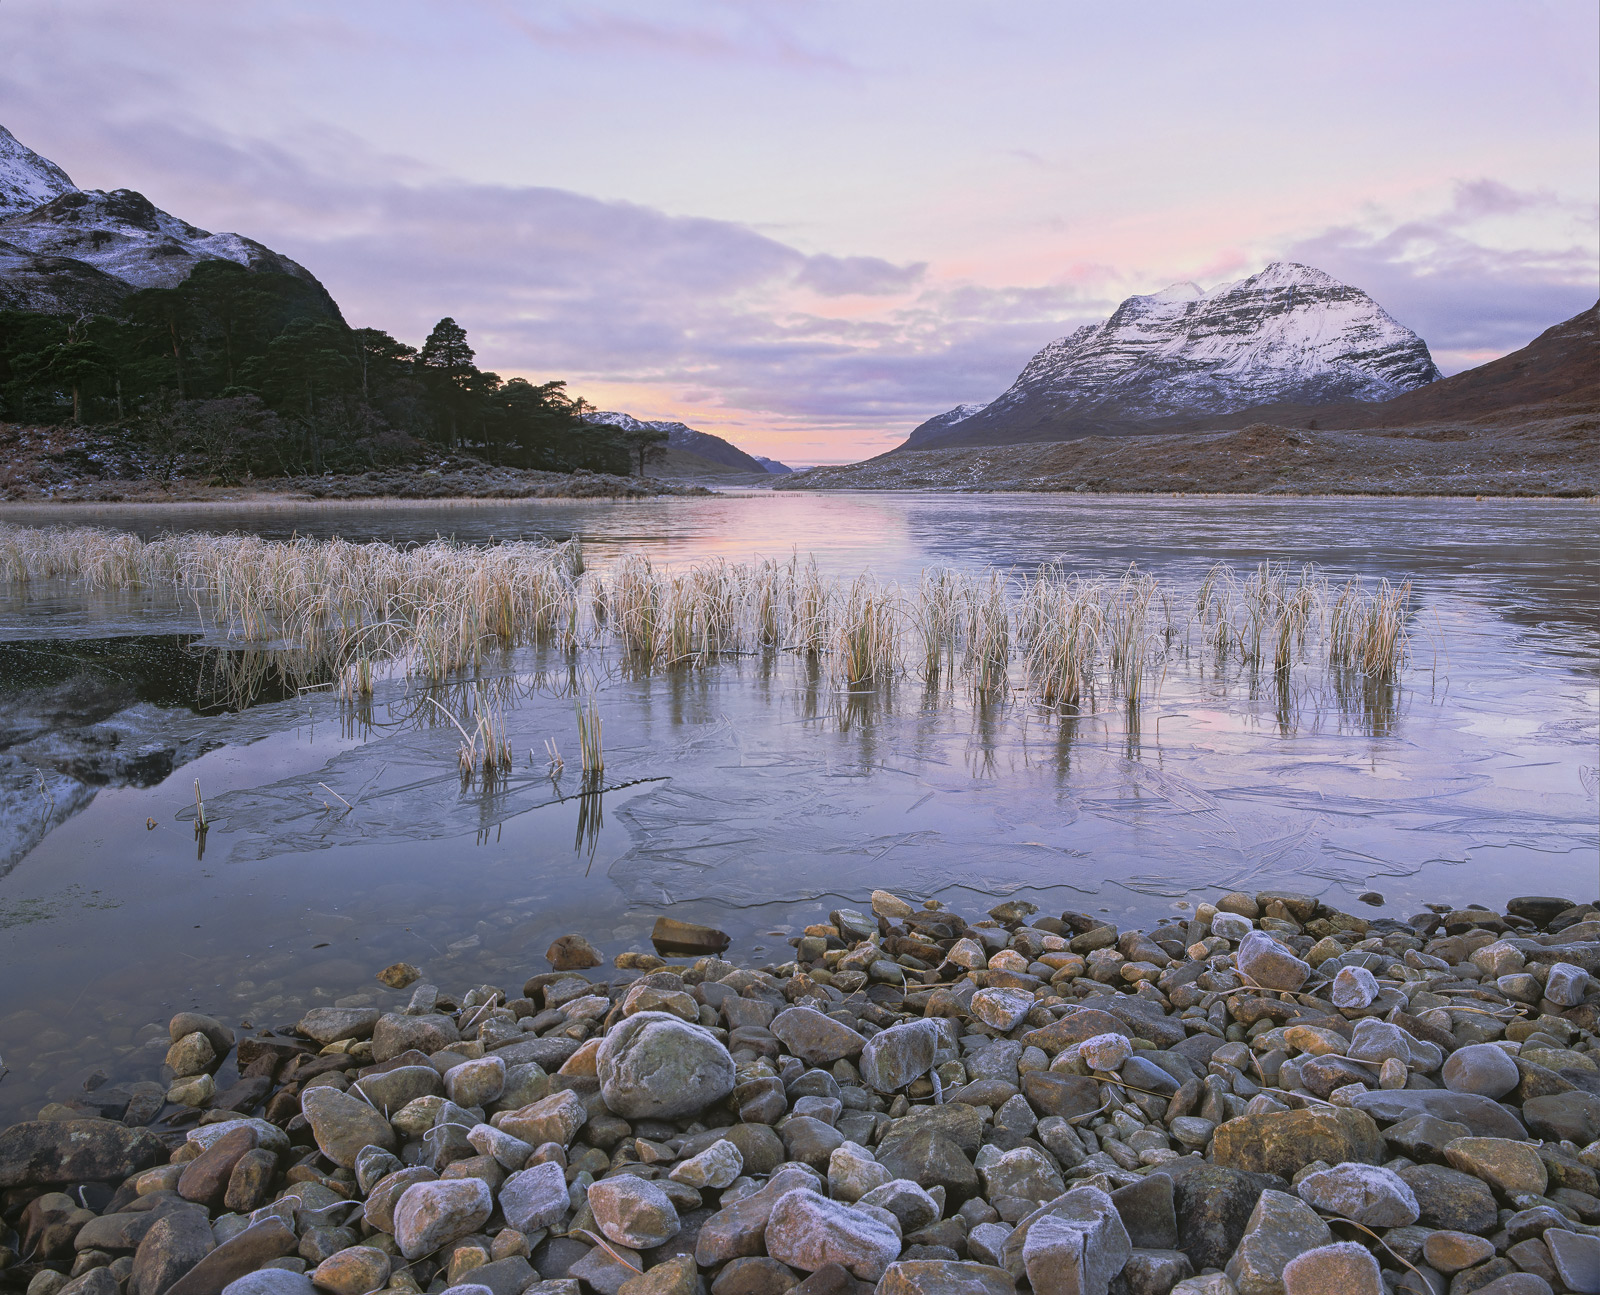 Stone Cold Clair, Loch Clair, Torridon, Scotland, cold, frosty, sun, ice, sub-zero, hoar frost, reeds, reflection, Liath, photo